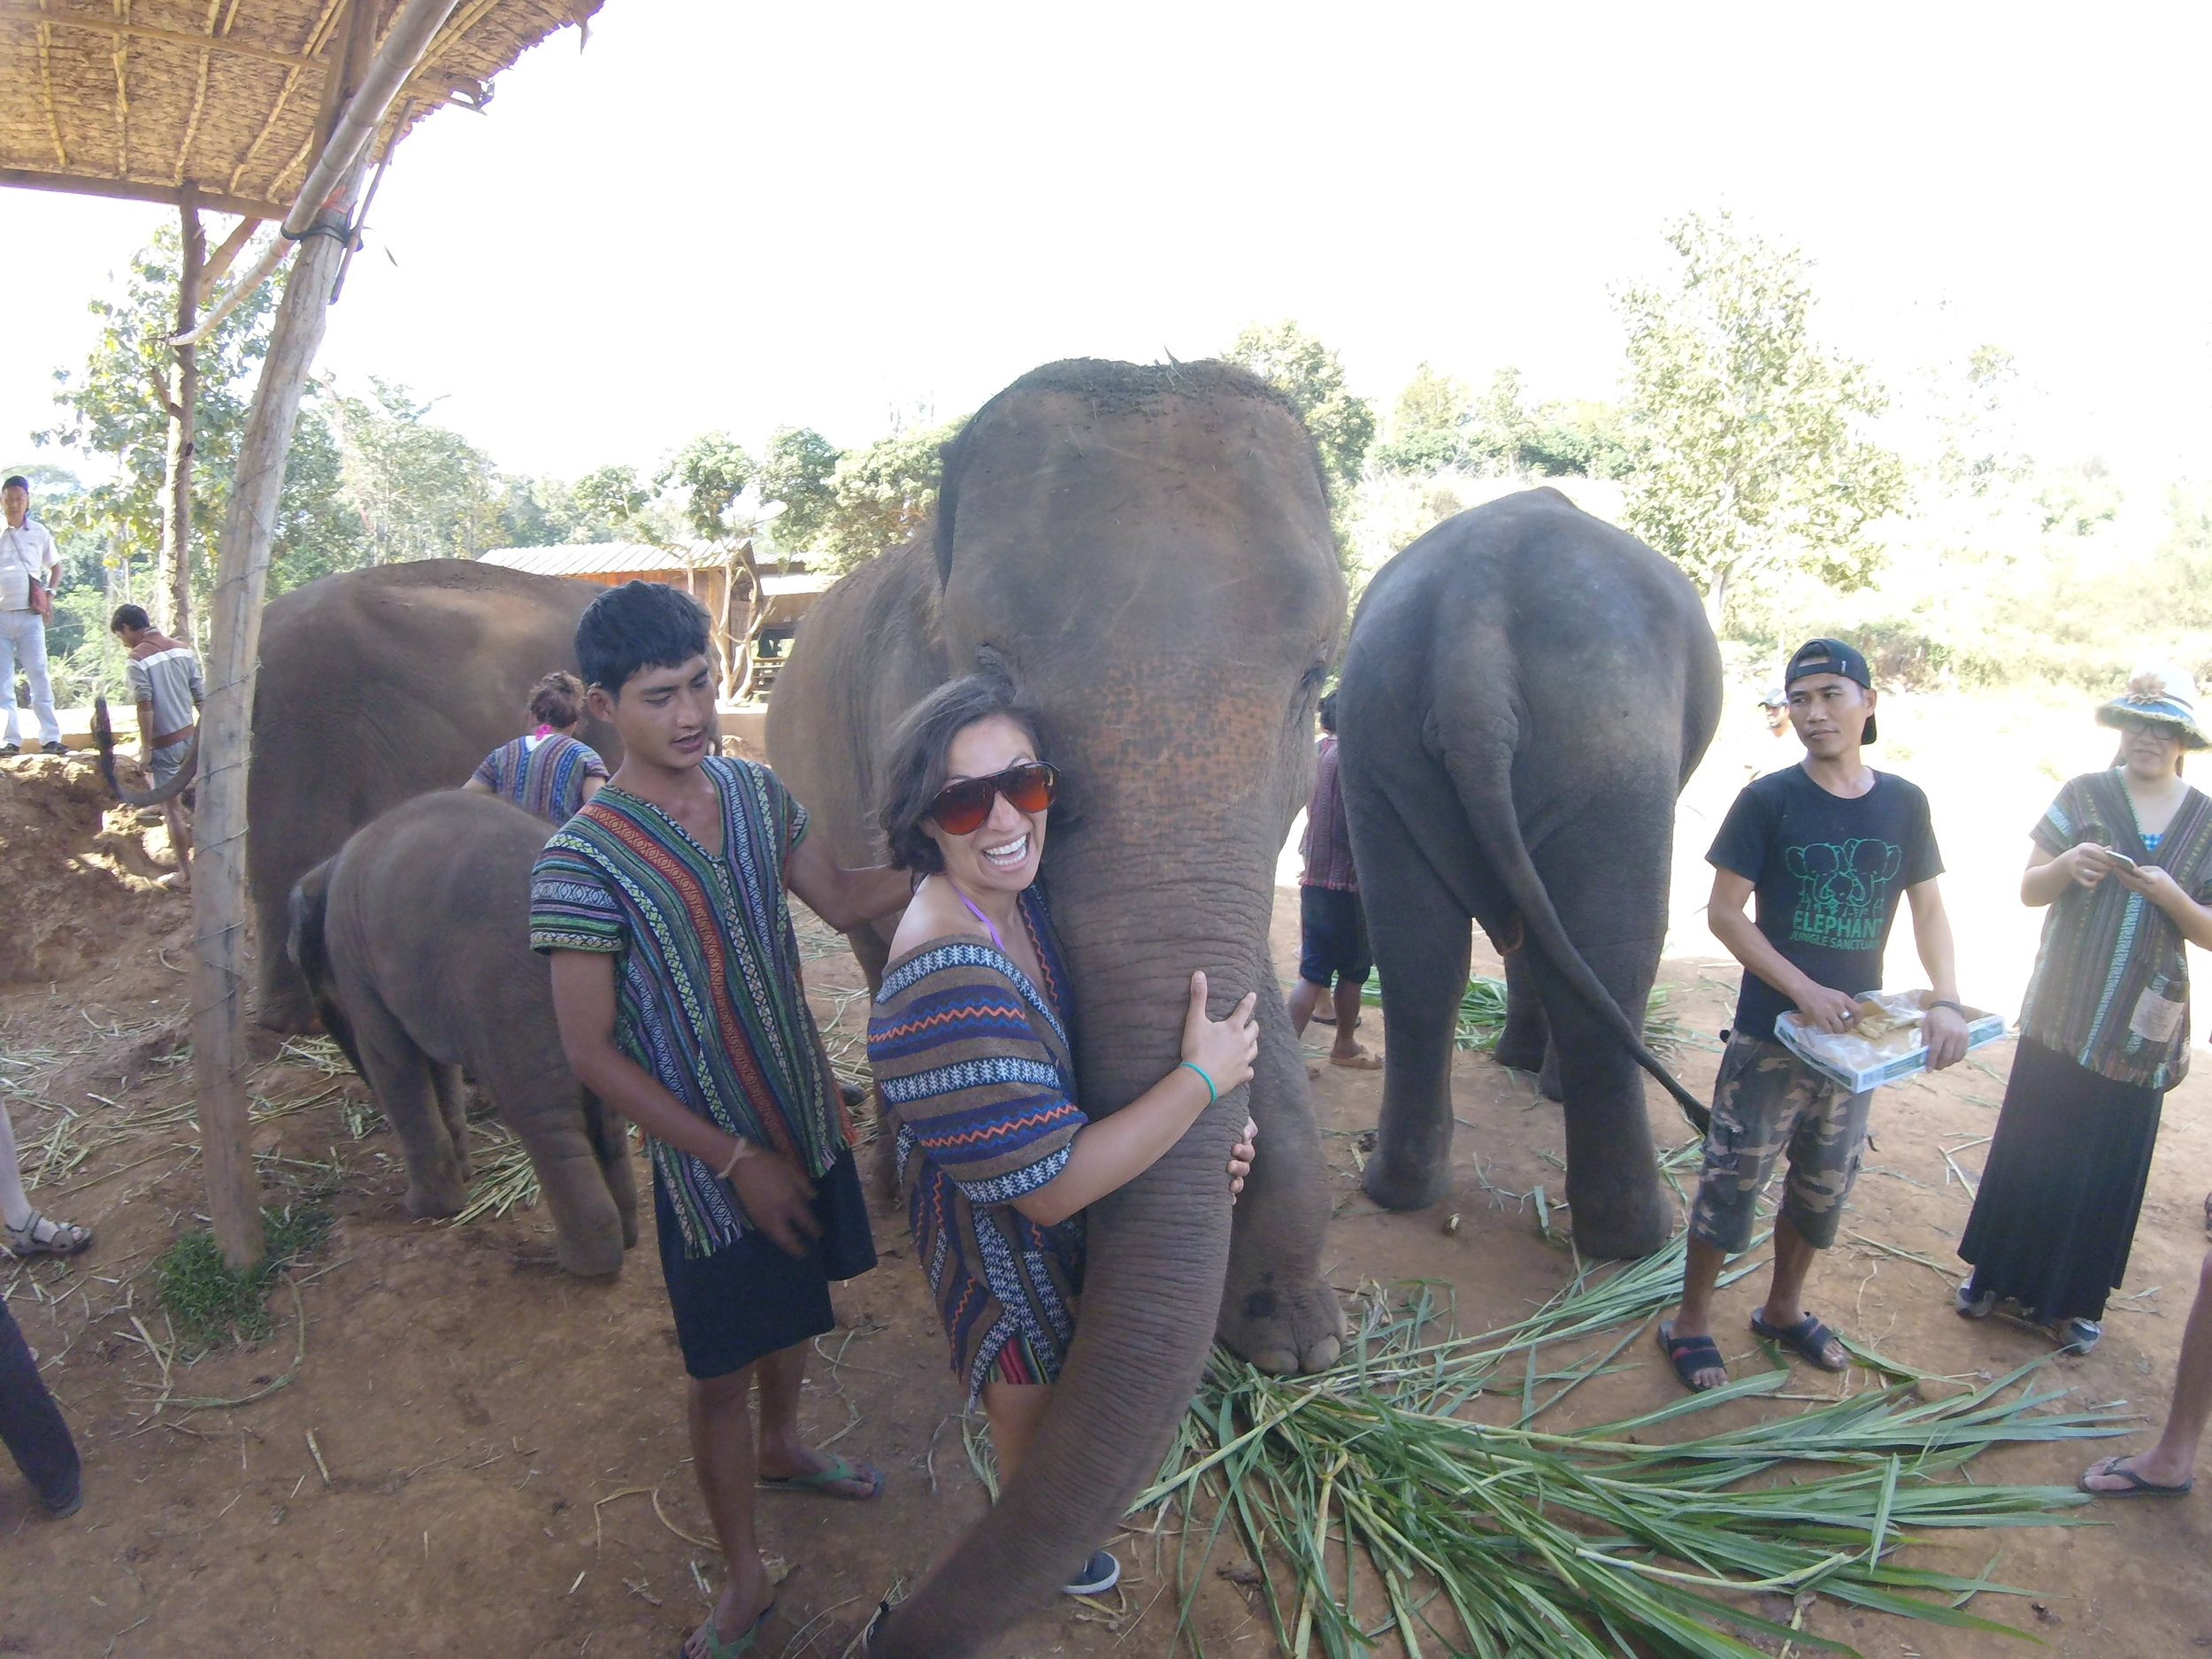 Me + Thailand + Elephant Sanctuary